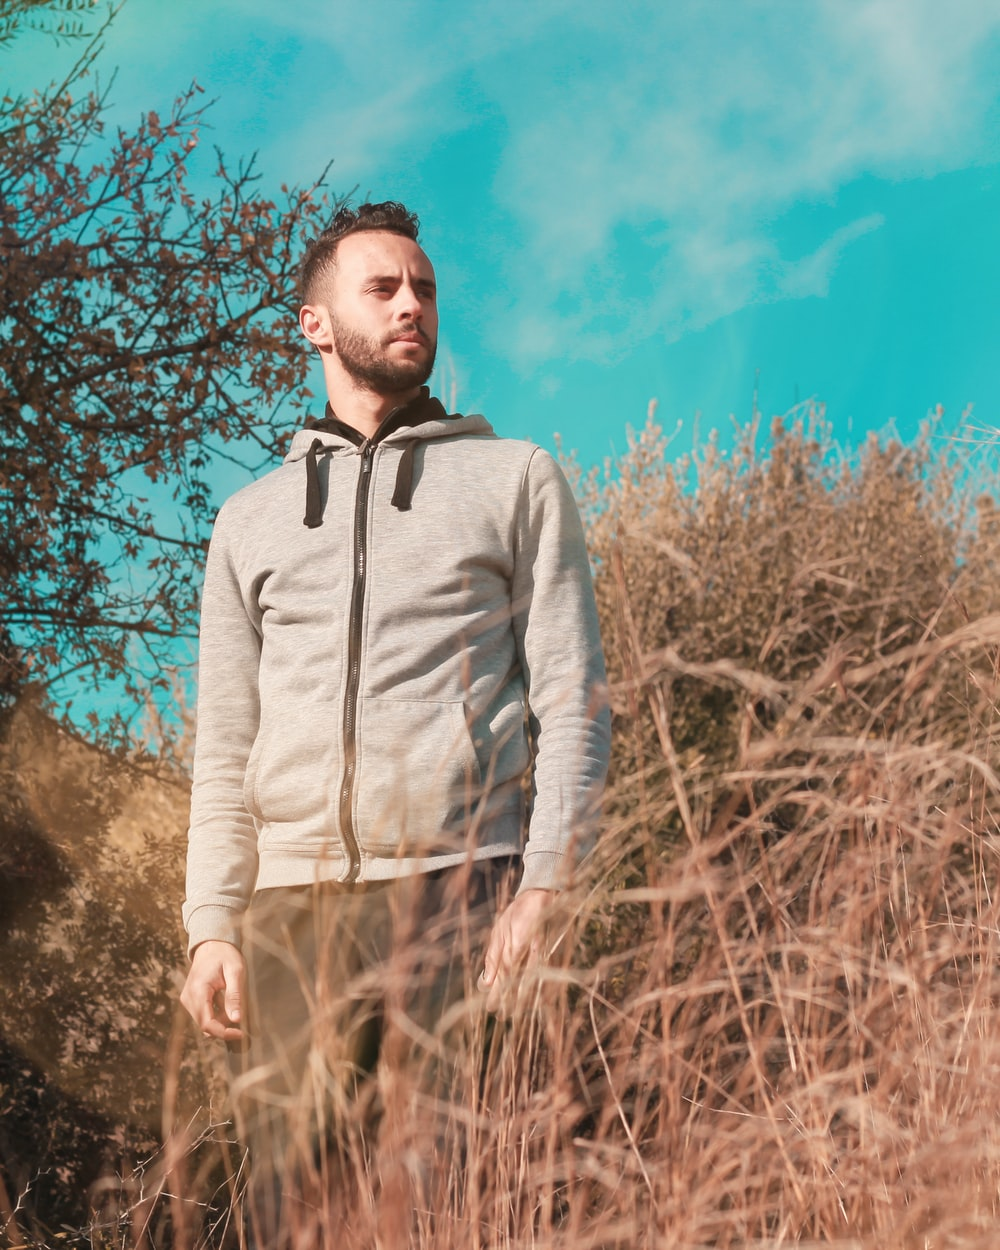 man in gray zip up jacket standing on brown grass field during daytime